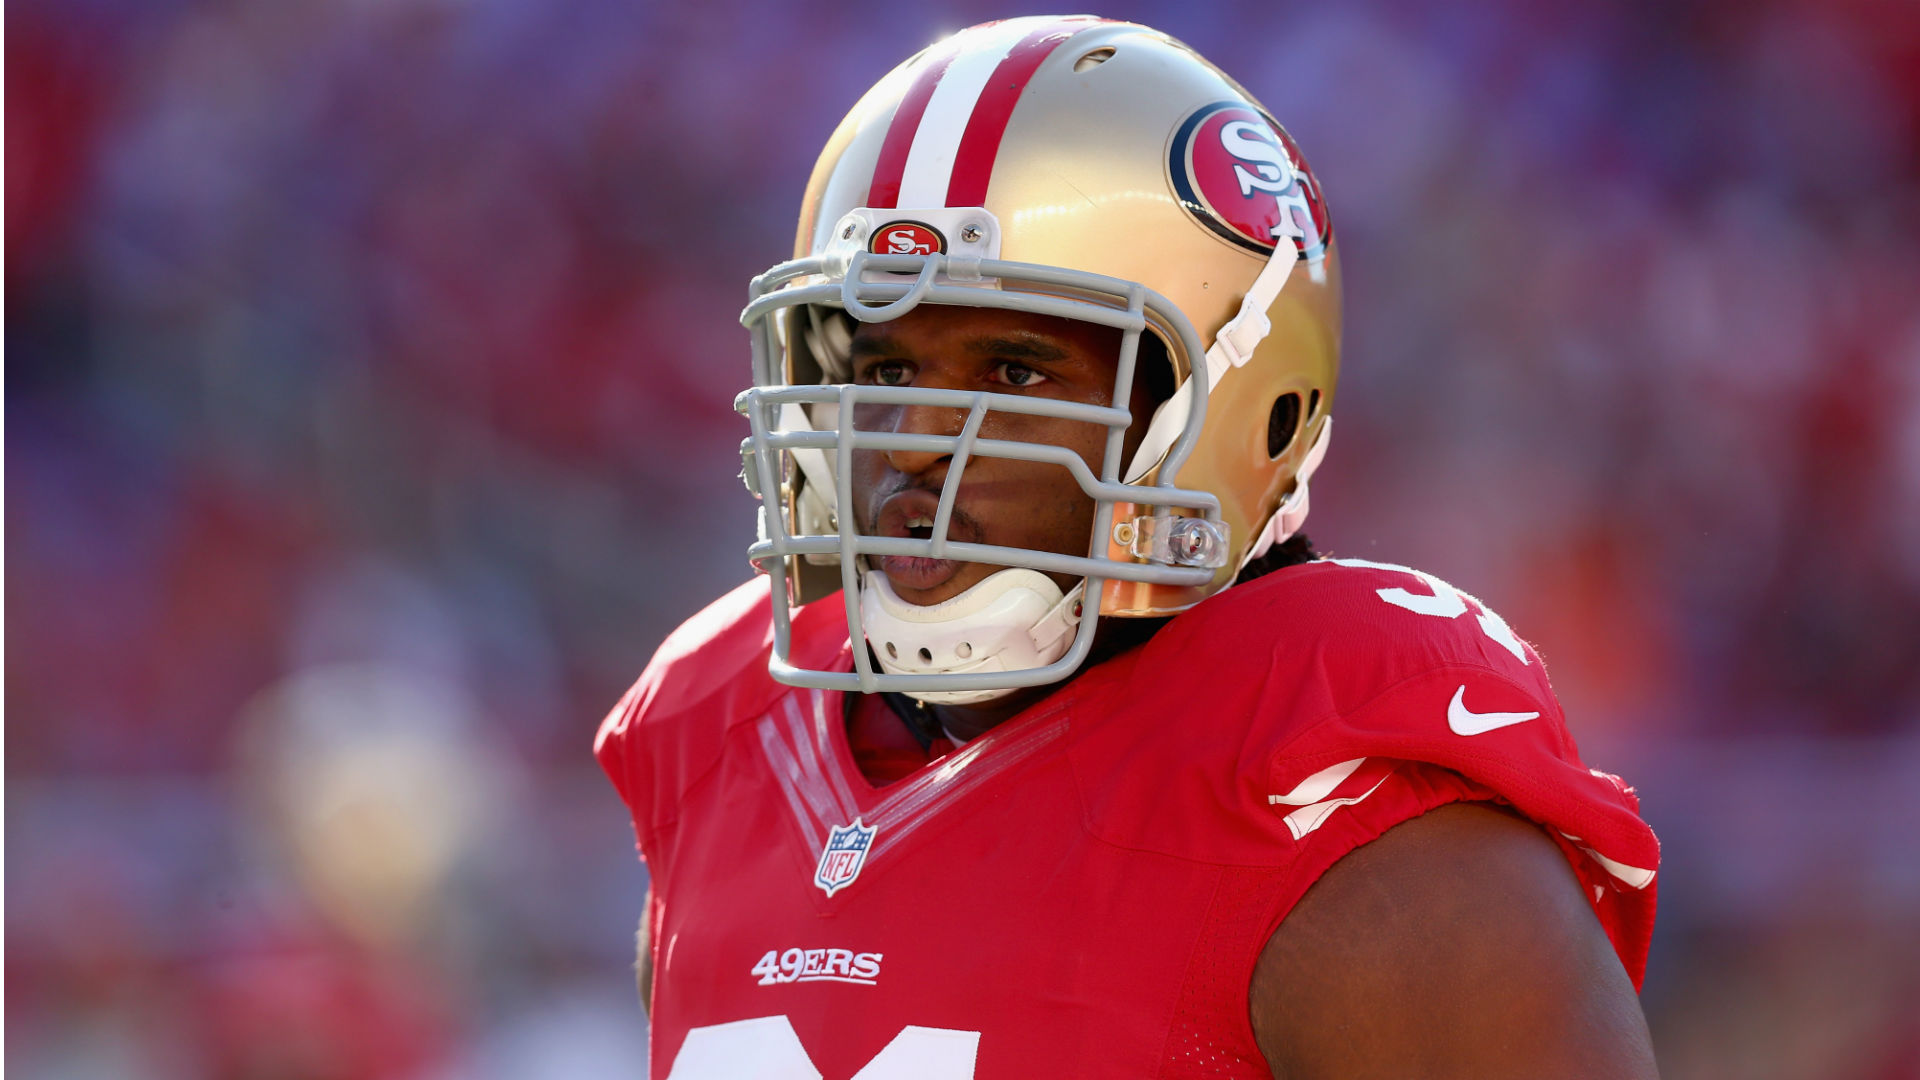 Bears release Ray McDonald after latest domestic violence arrest